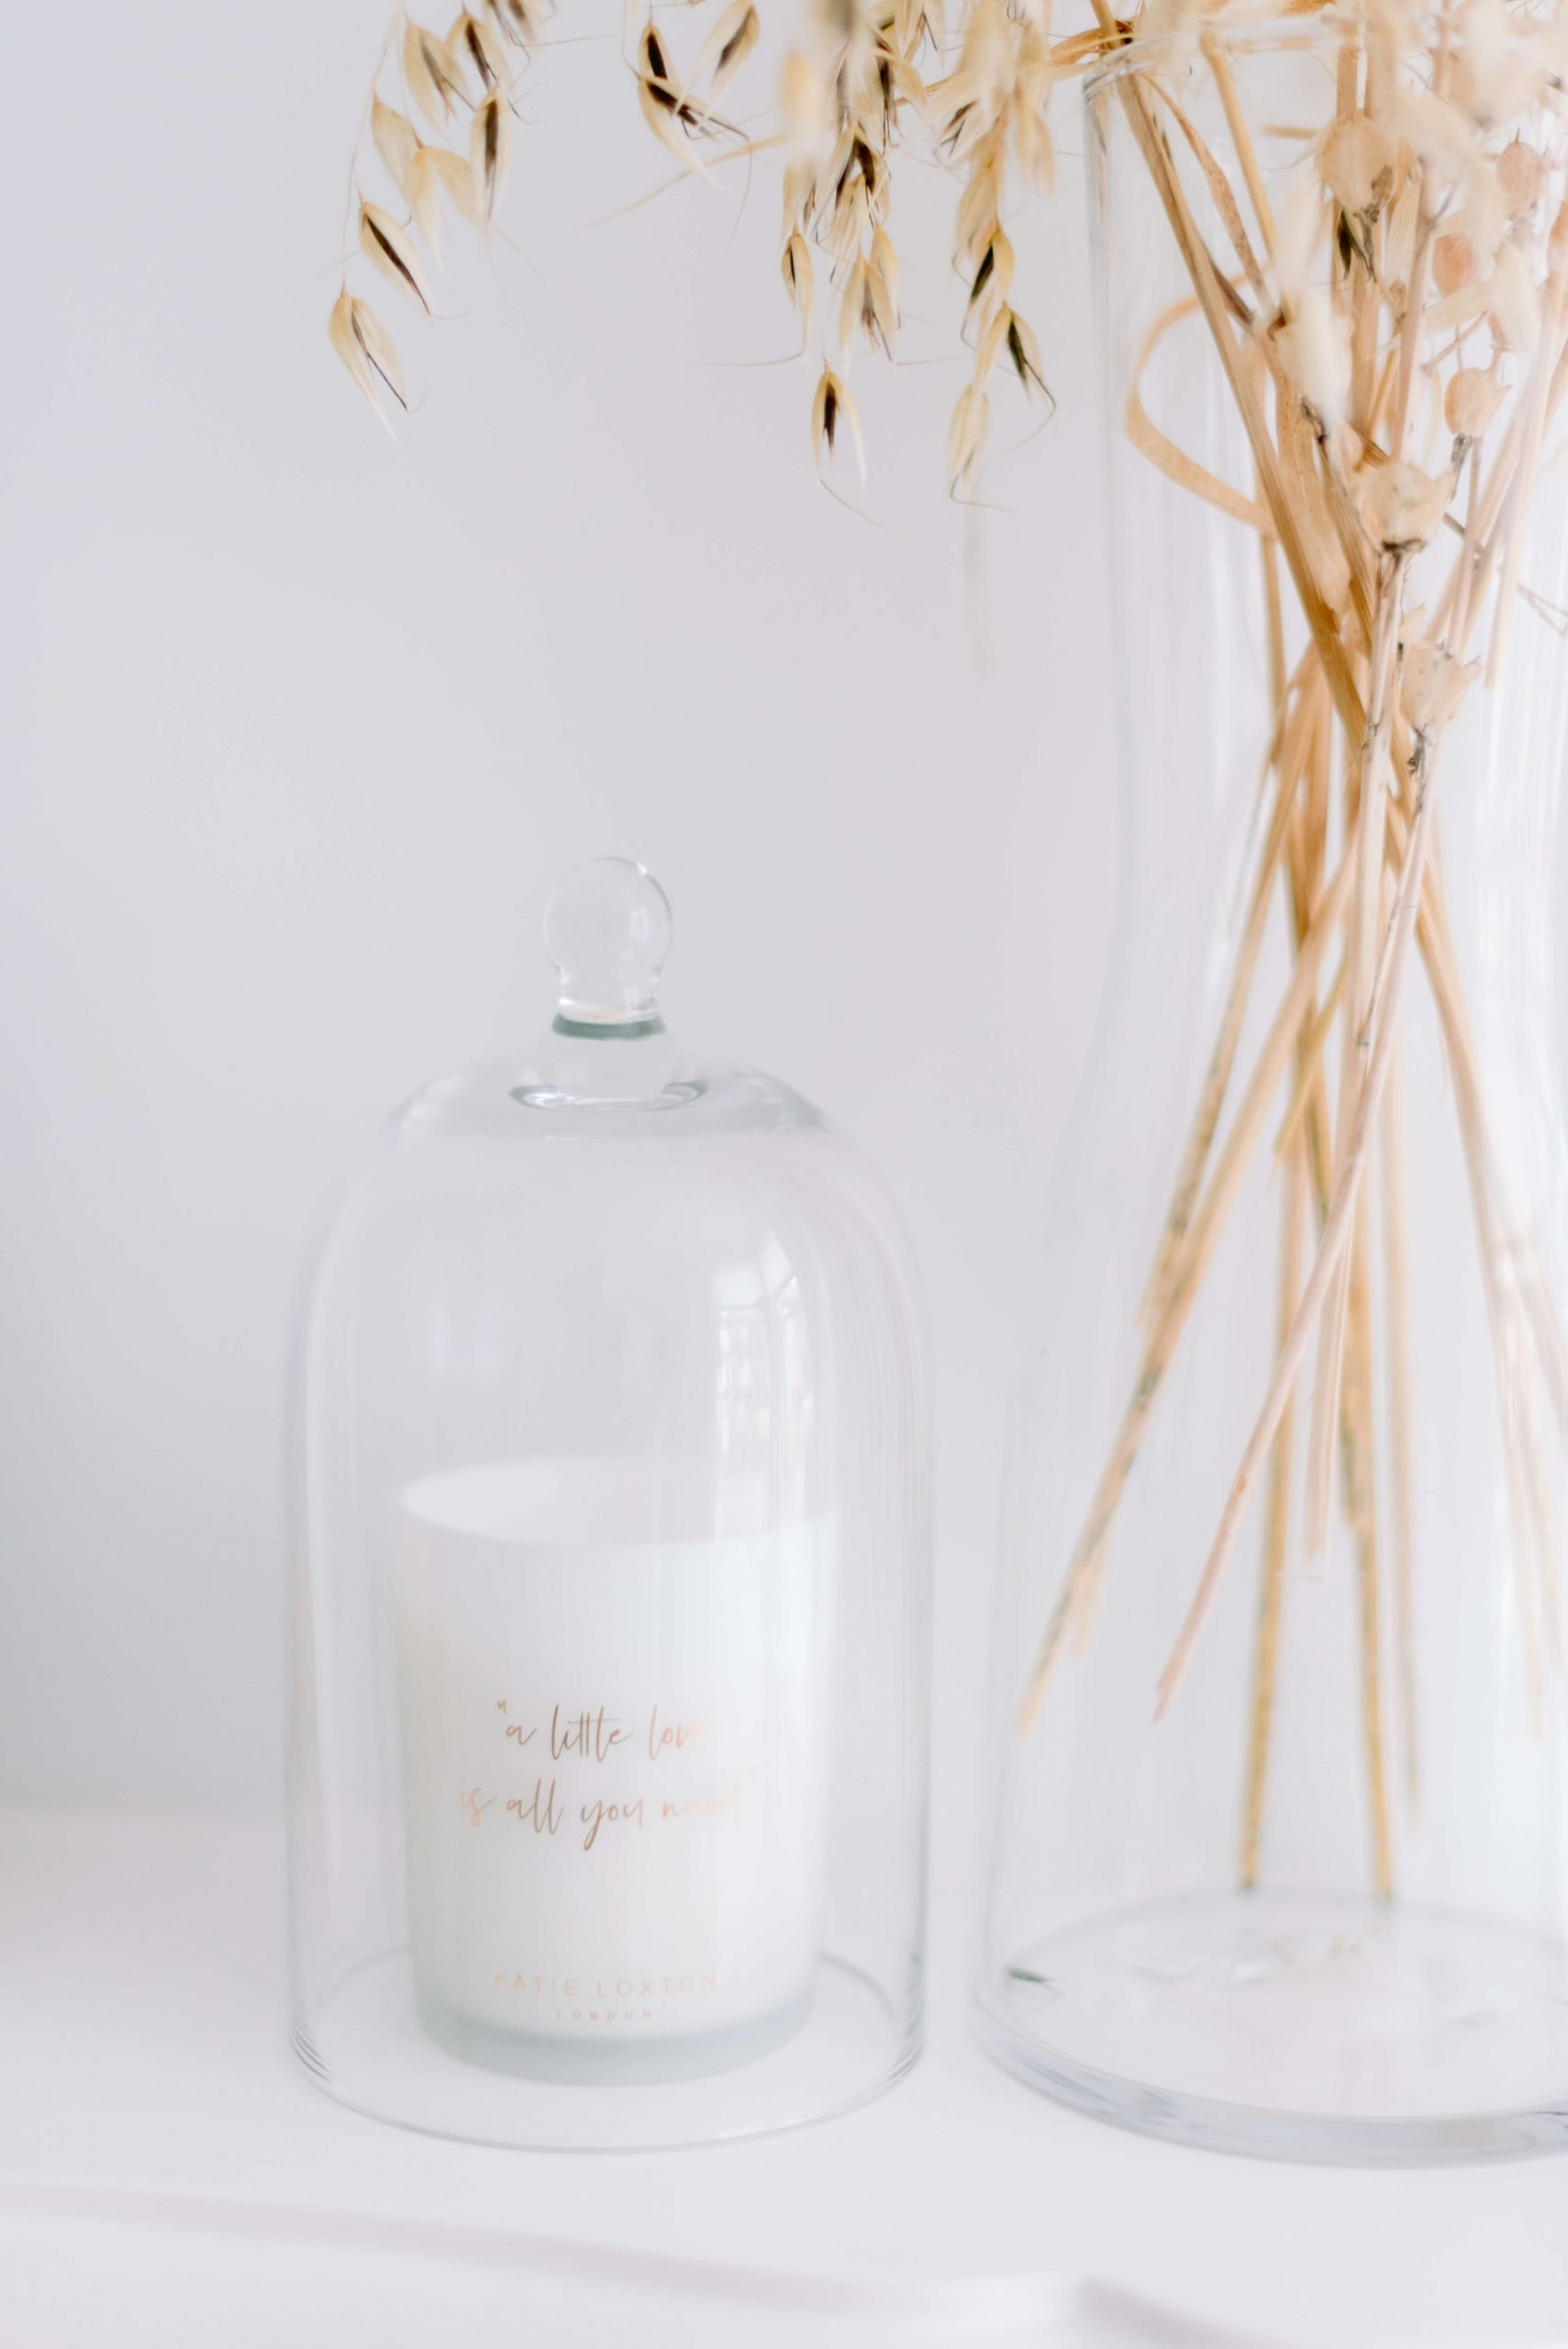 Hygge self-care theme: A little love is all you need scented candle from Katie Loxton with glass candle dome hurricane cover, dried foliage in clear vase. Photo by Cristina Ilao www.cristinailao.com